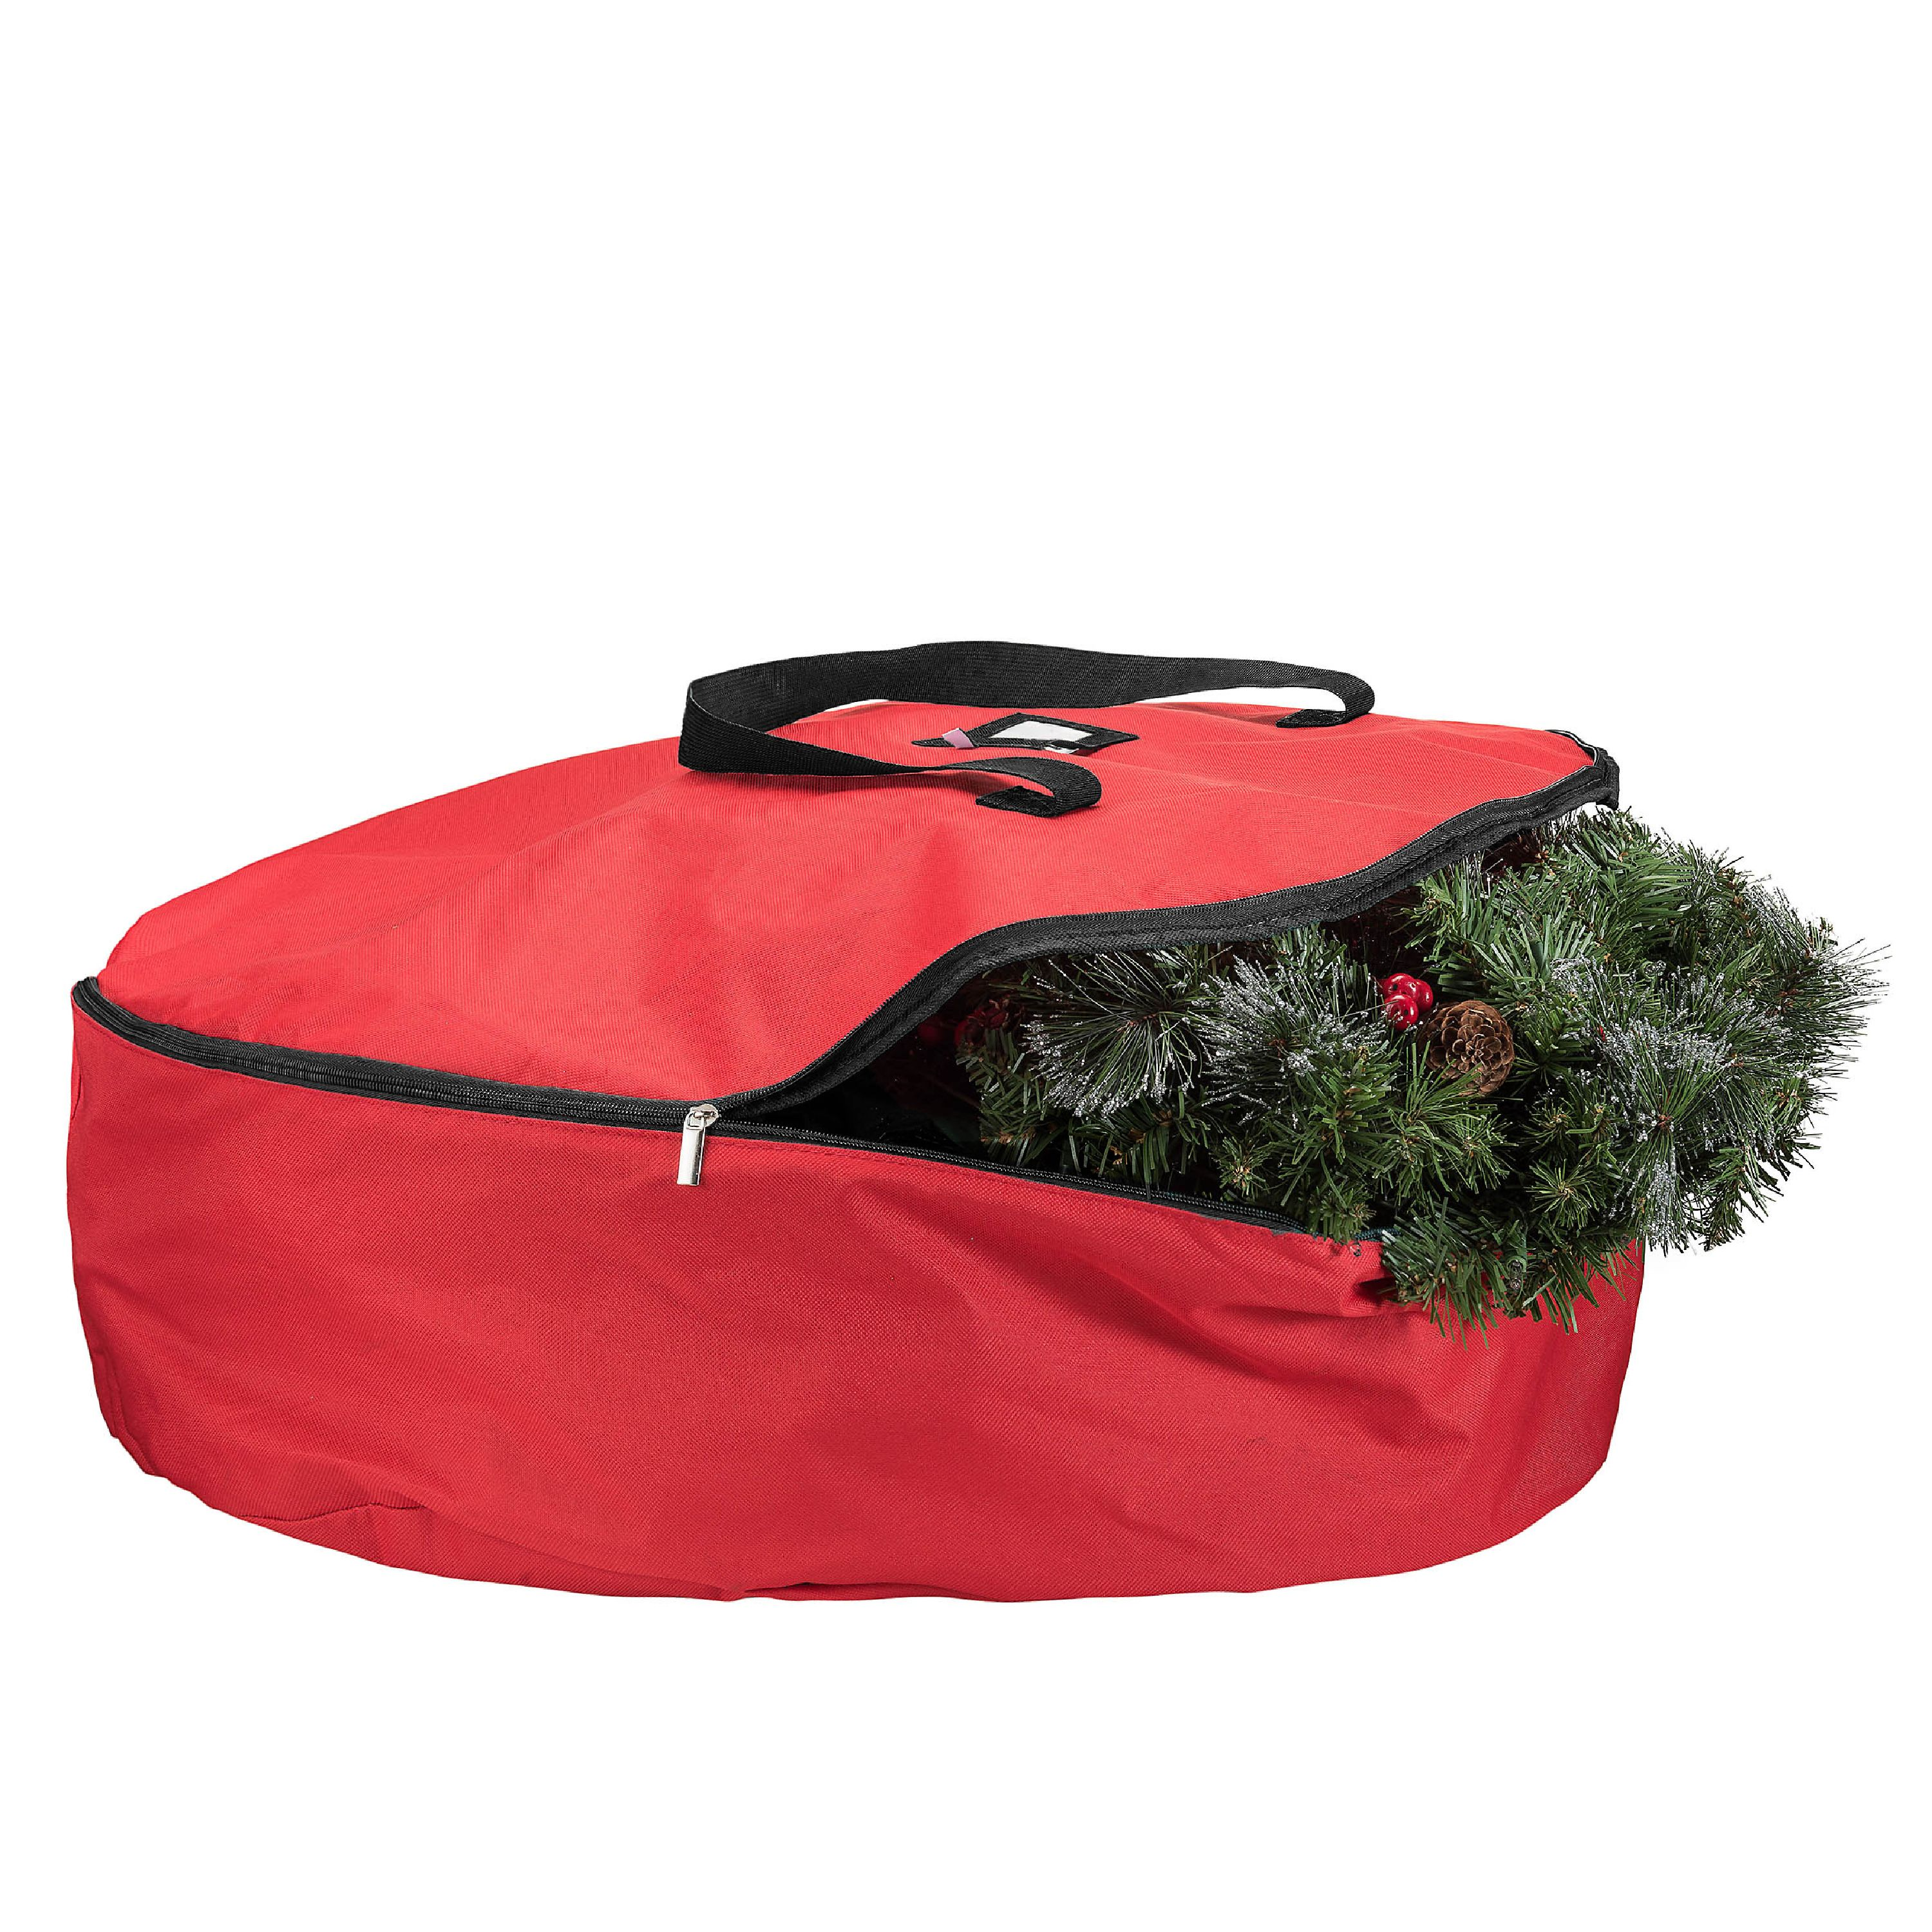 Zober Christmas Wreath Storage Bag -30 x 30 x 8, 600D Oxford Tear Resistant Storage Bag with Sleek Zipper Featuring Transparent Card Slot for Labeling - Red